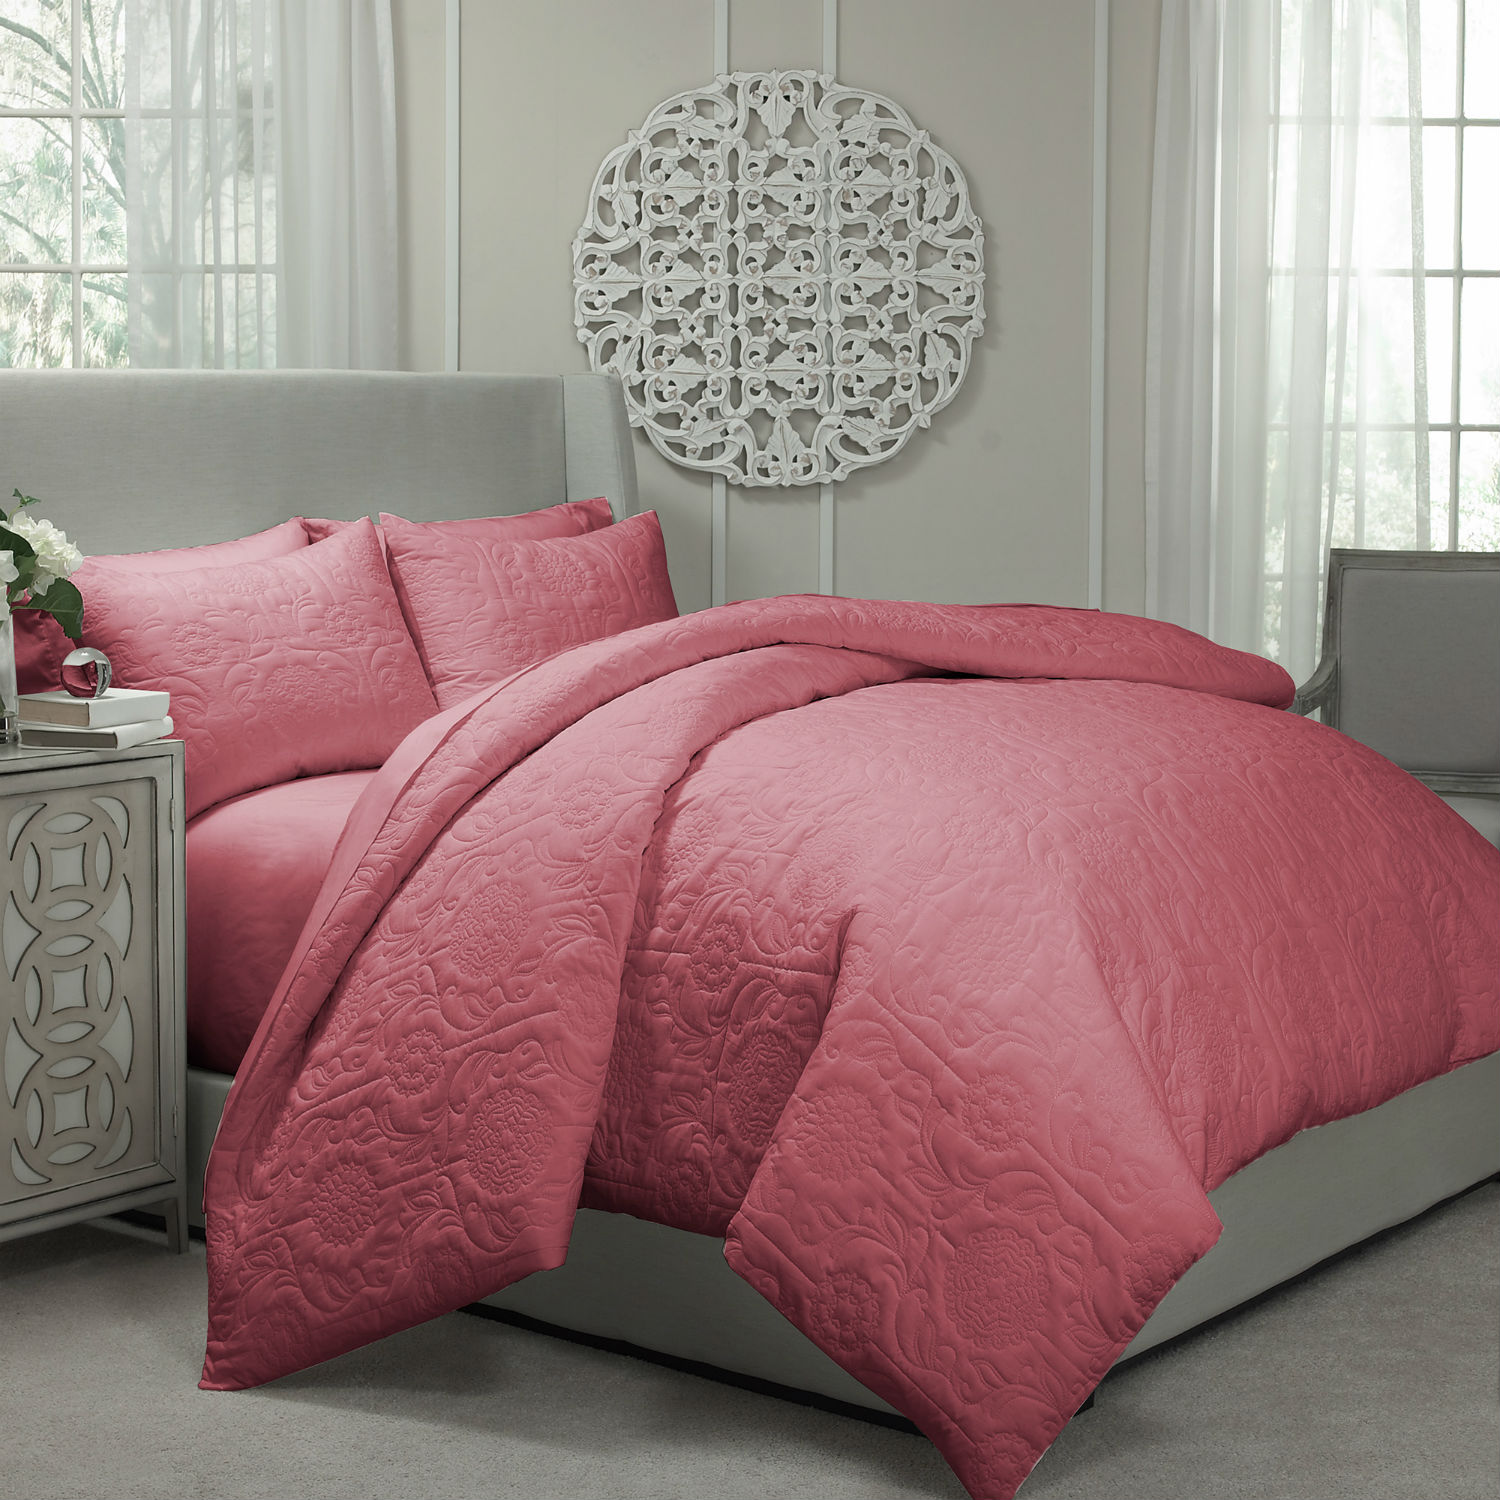 Barcelona Coral By Vue Bedding Collection Beddingsuperstore Com